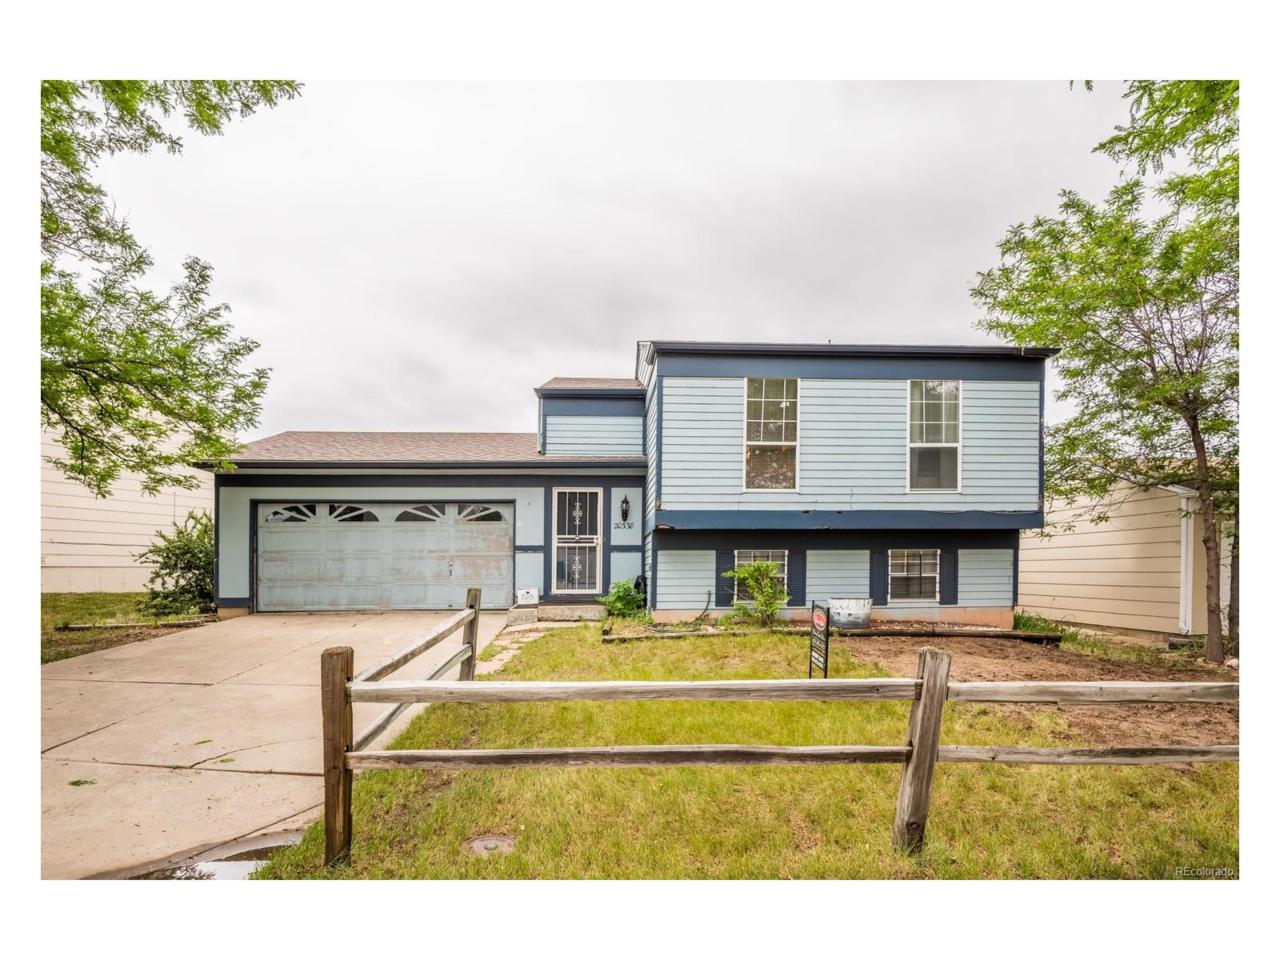 20338 E Coolidge Drive, Aurora, CO 80011 (MLS #2592713) :: 8z Real Estate